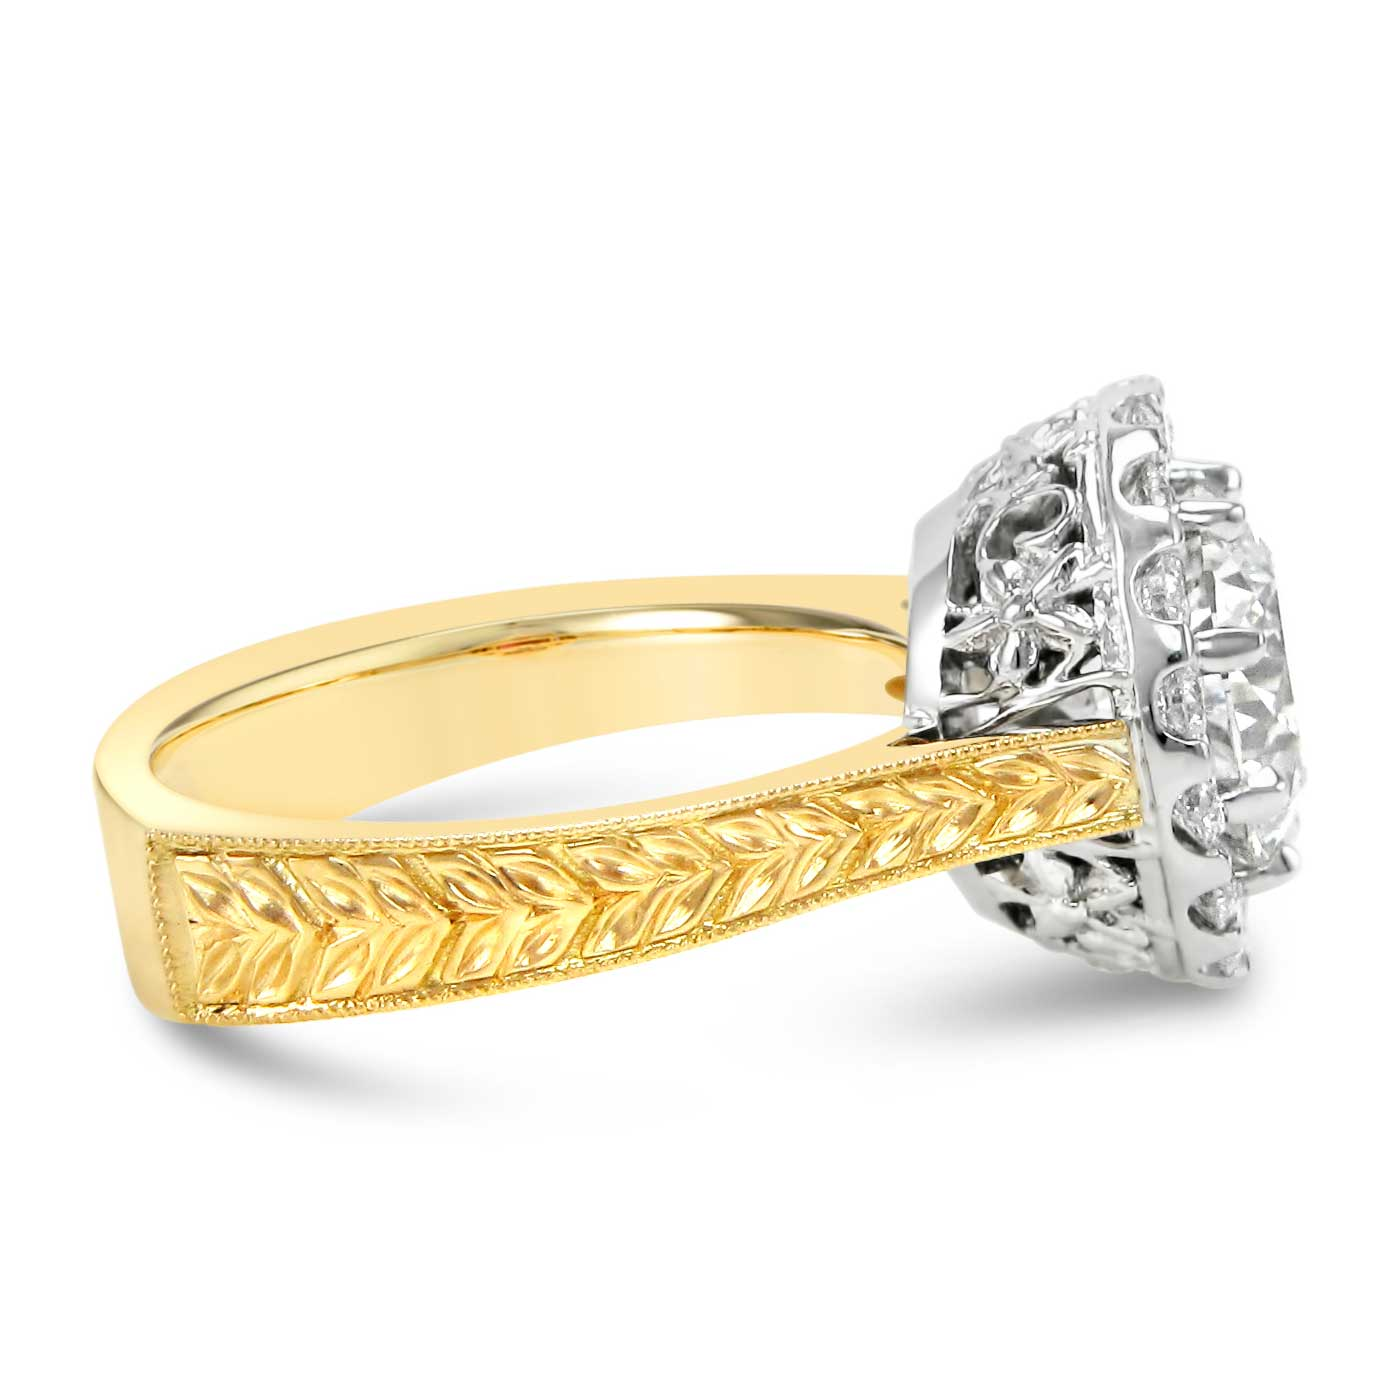 Vintage inspired 19k white and 18k yellow gold engagement ring set with a 2ct center stone and a diamond halo